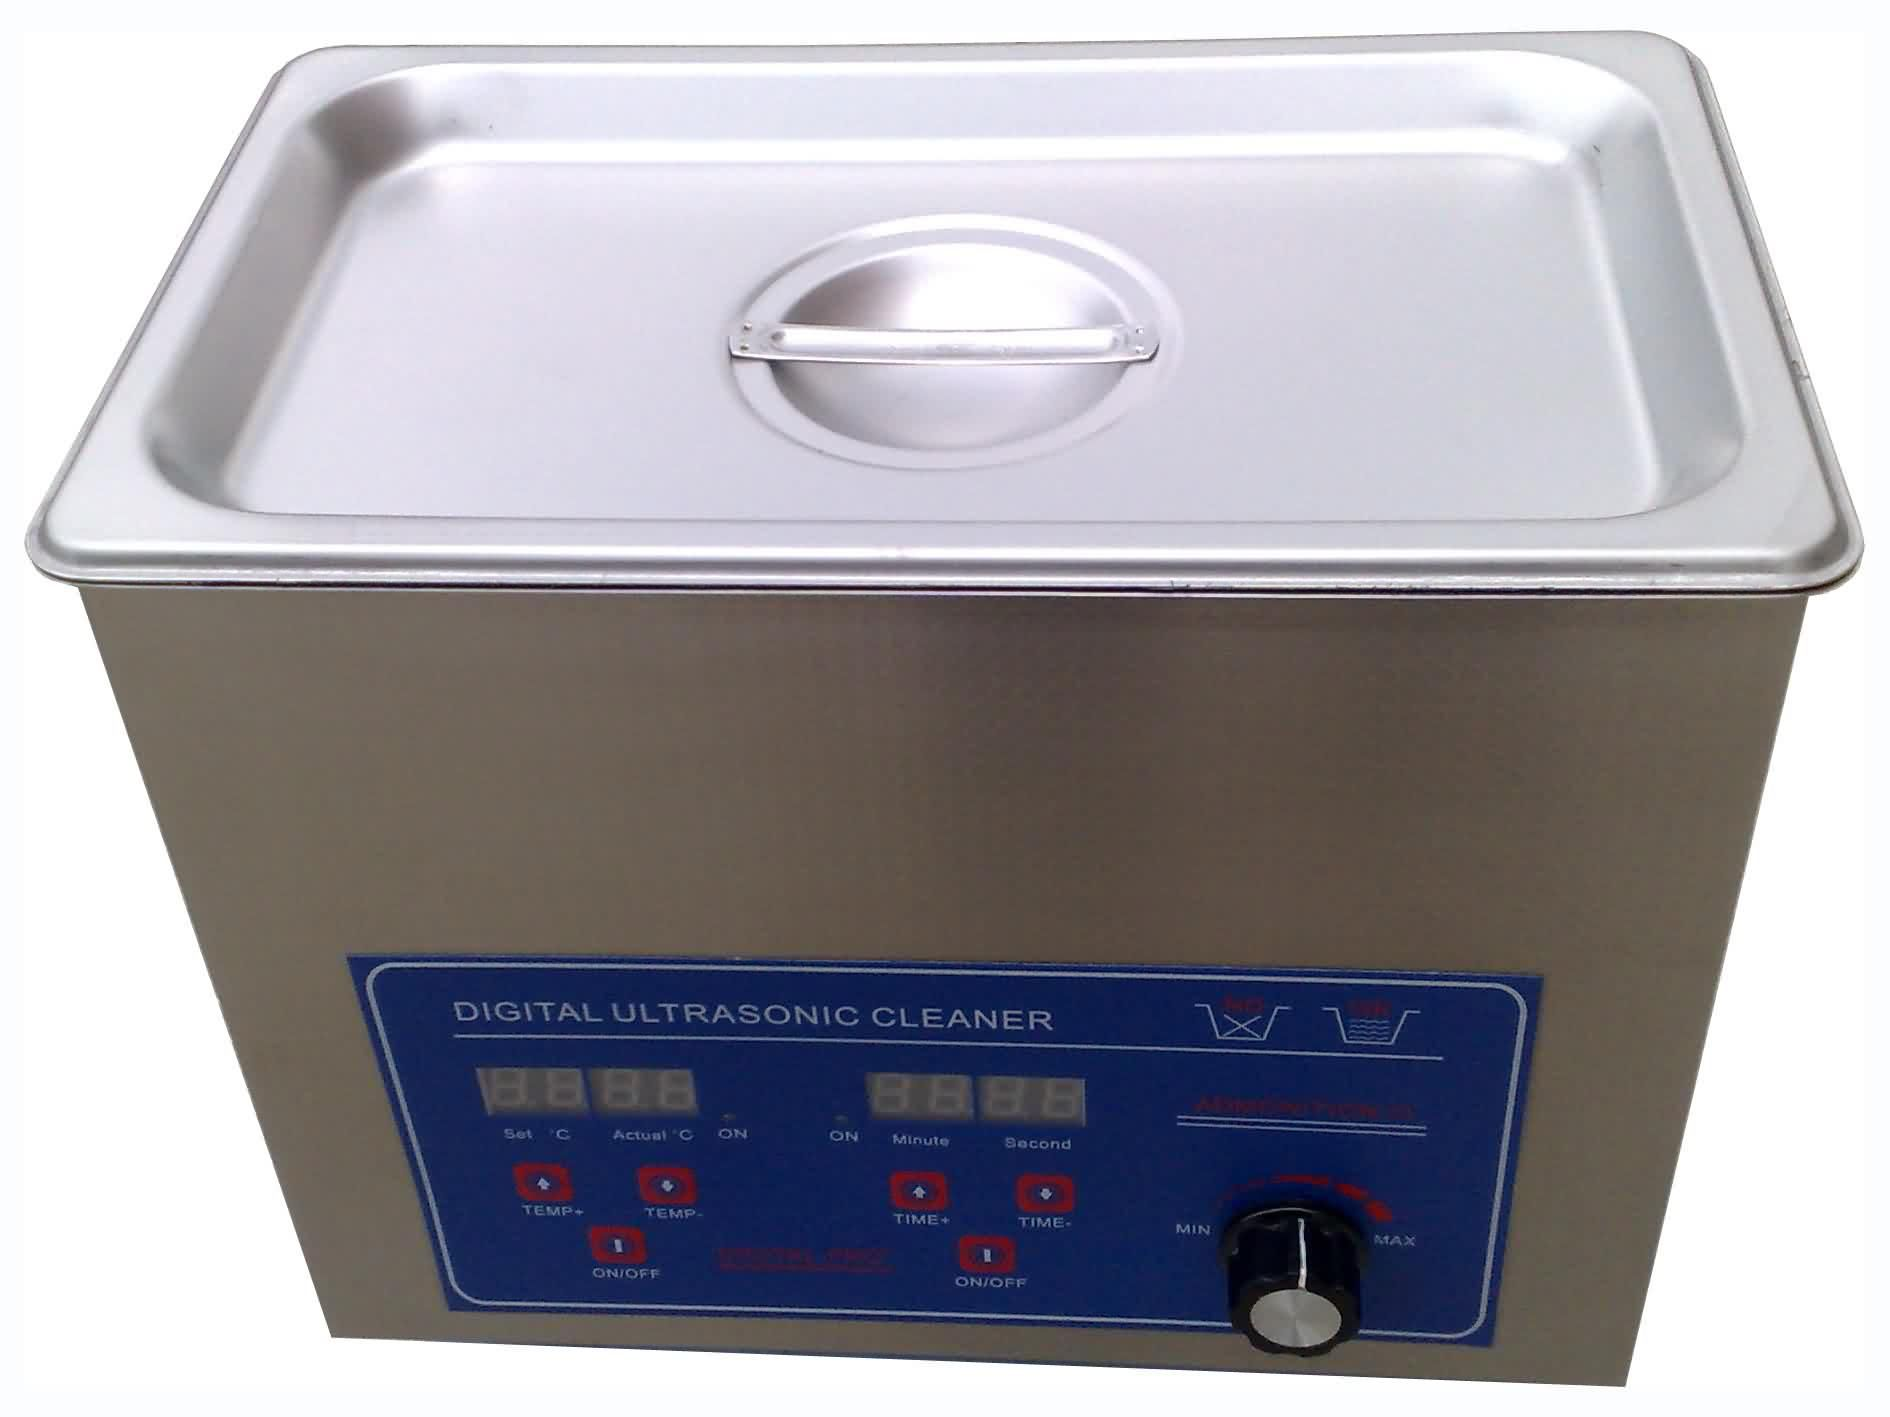 50 Best Ultrasonic Cleaners Images On Pinterest Cleaning Beijing Transducerultrasonic Humidifier Piezoelectric Transducertransducer And Commercial